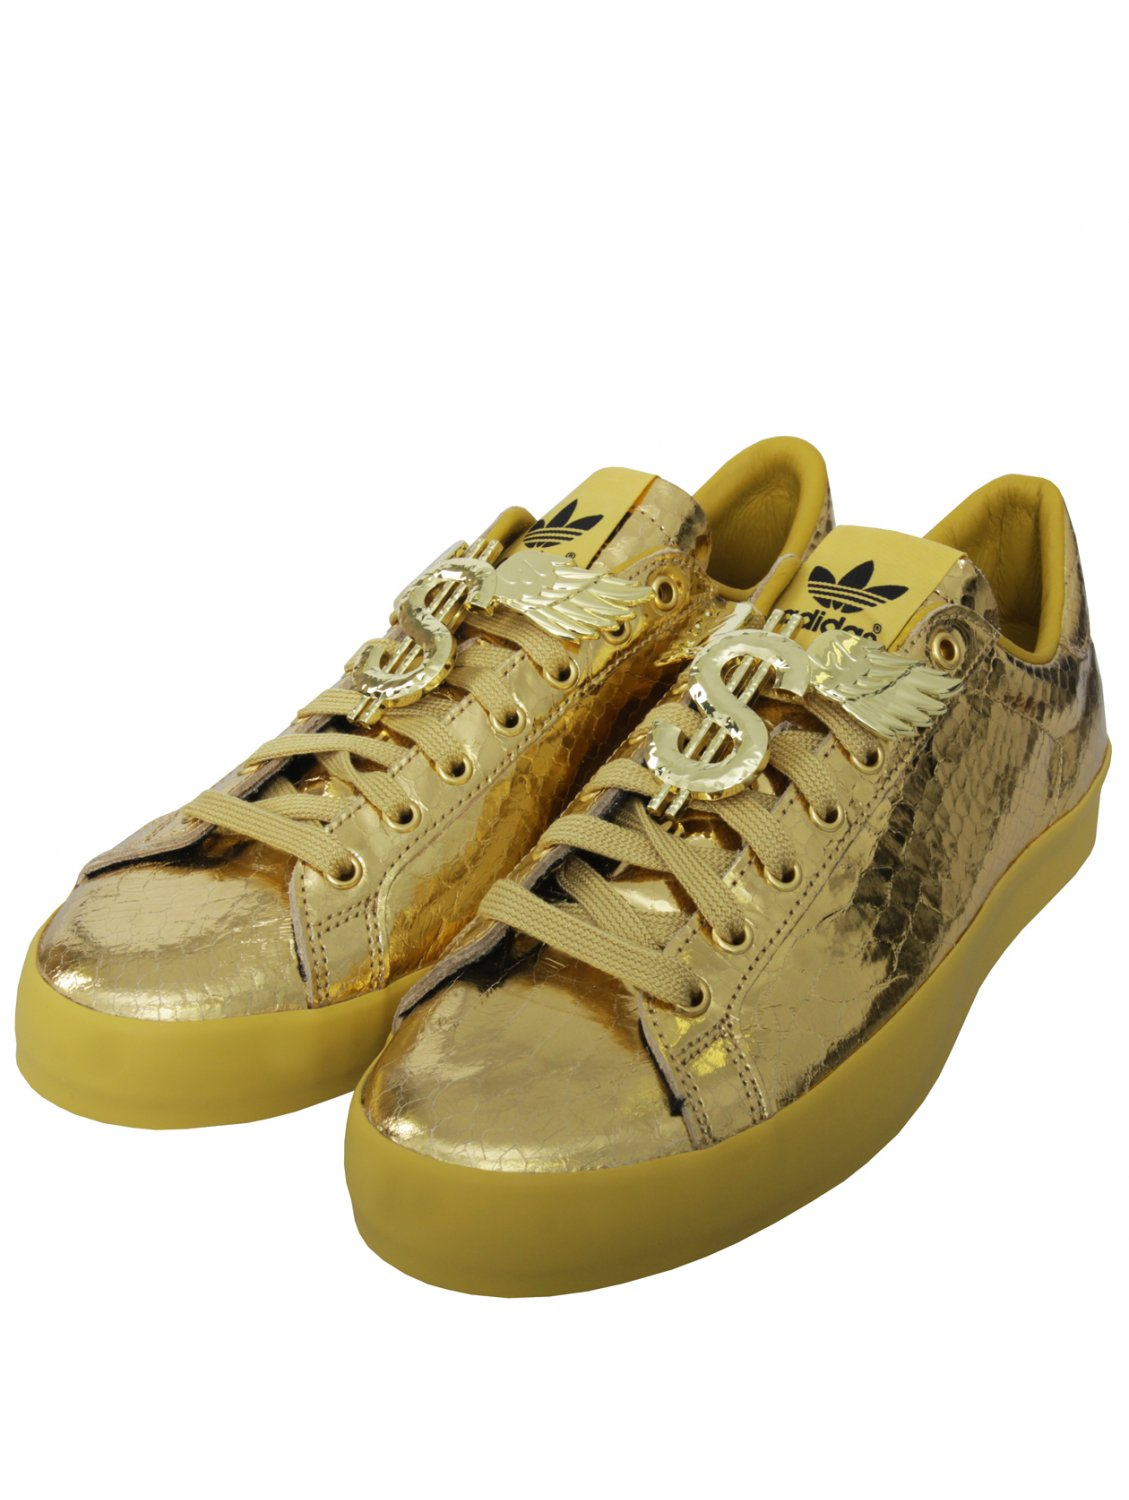 Adidas Sneakers Gold